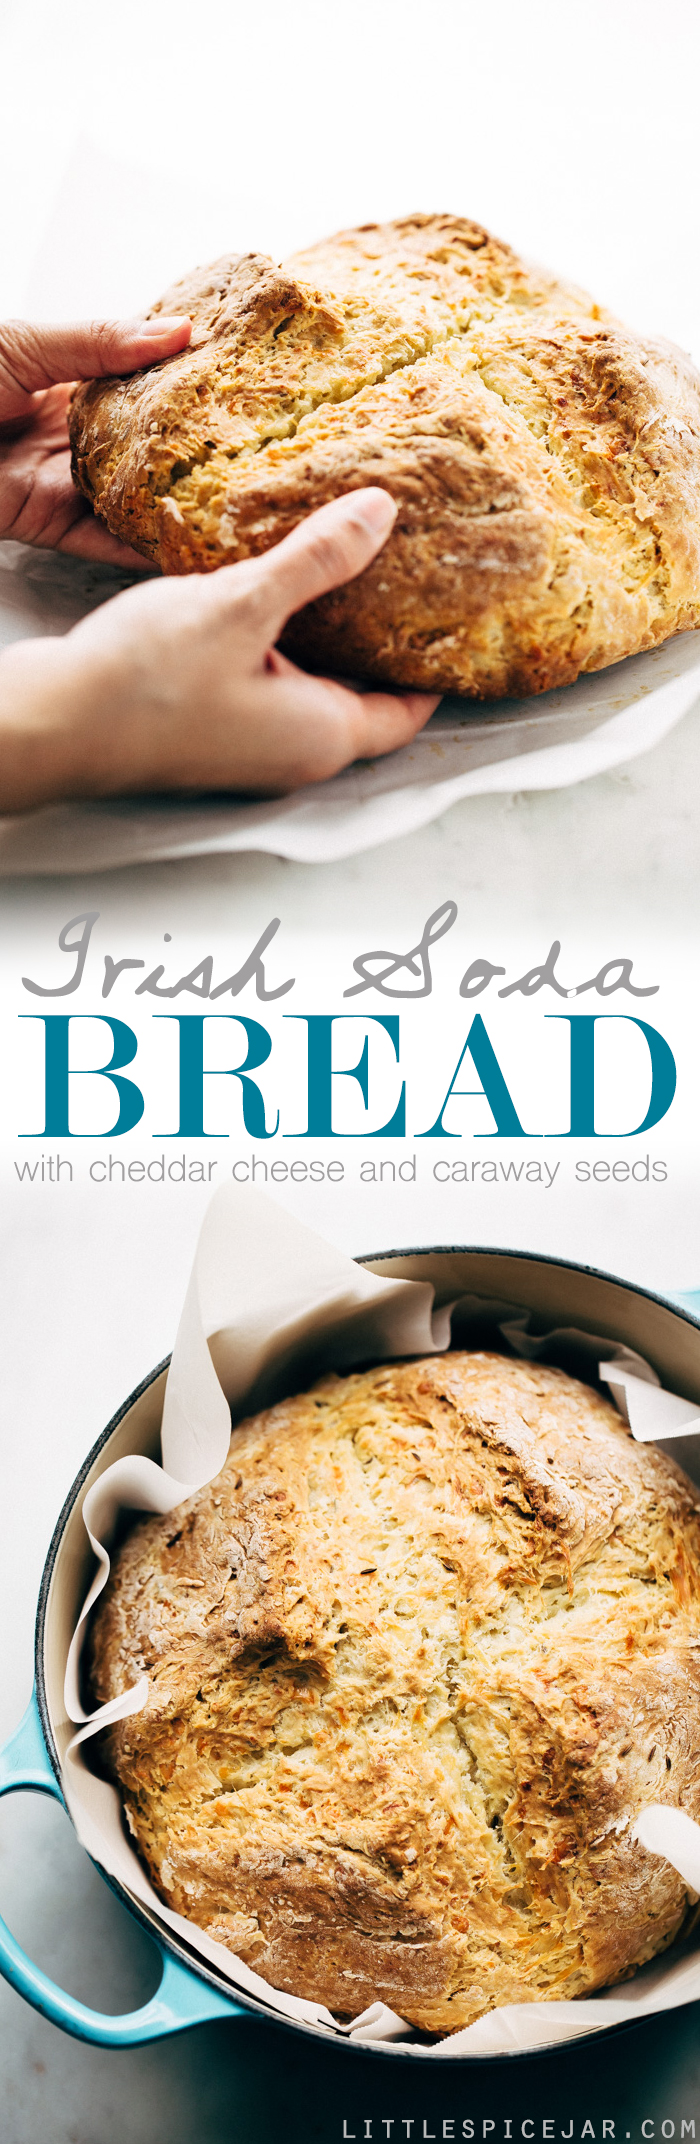 Easy Caraway and Cheddar Irish Soda Bread - bread made with just a few ingredients! Ready in less than an hour and speckled with caraway seeds and cheddar cheese! #irishbread #sodabread #irishsodabread #quickbread #nokneadbread   Littlespicejar.com